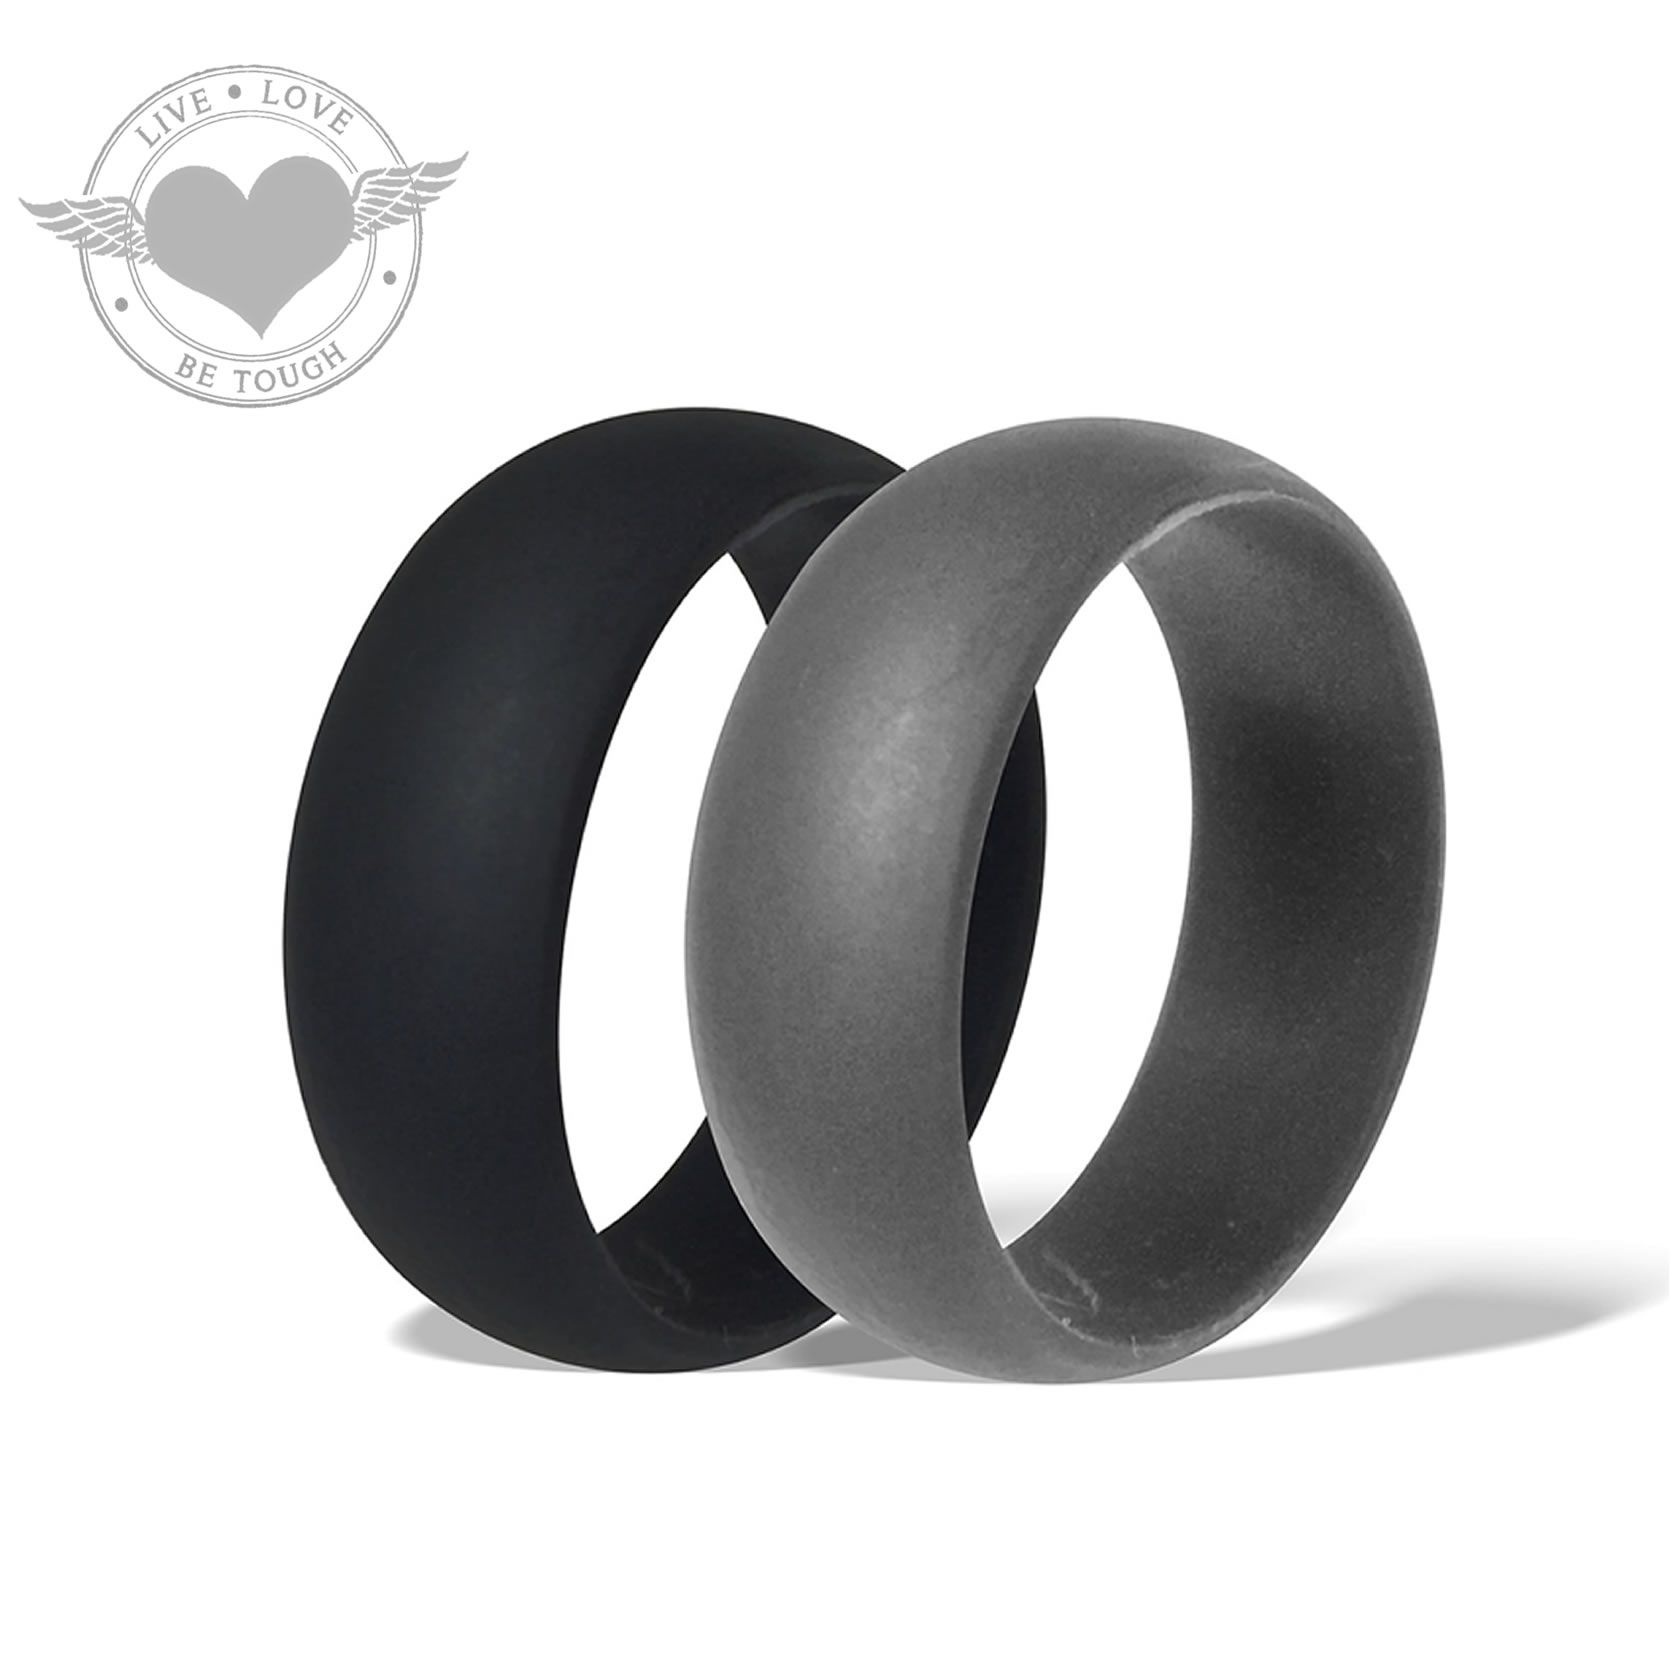 antler engagement custom bands grained the wild in format designs silicone design rings wood band wedding wear staghead